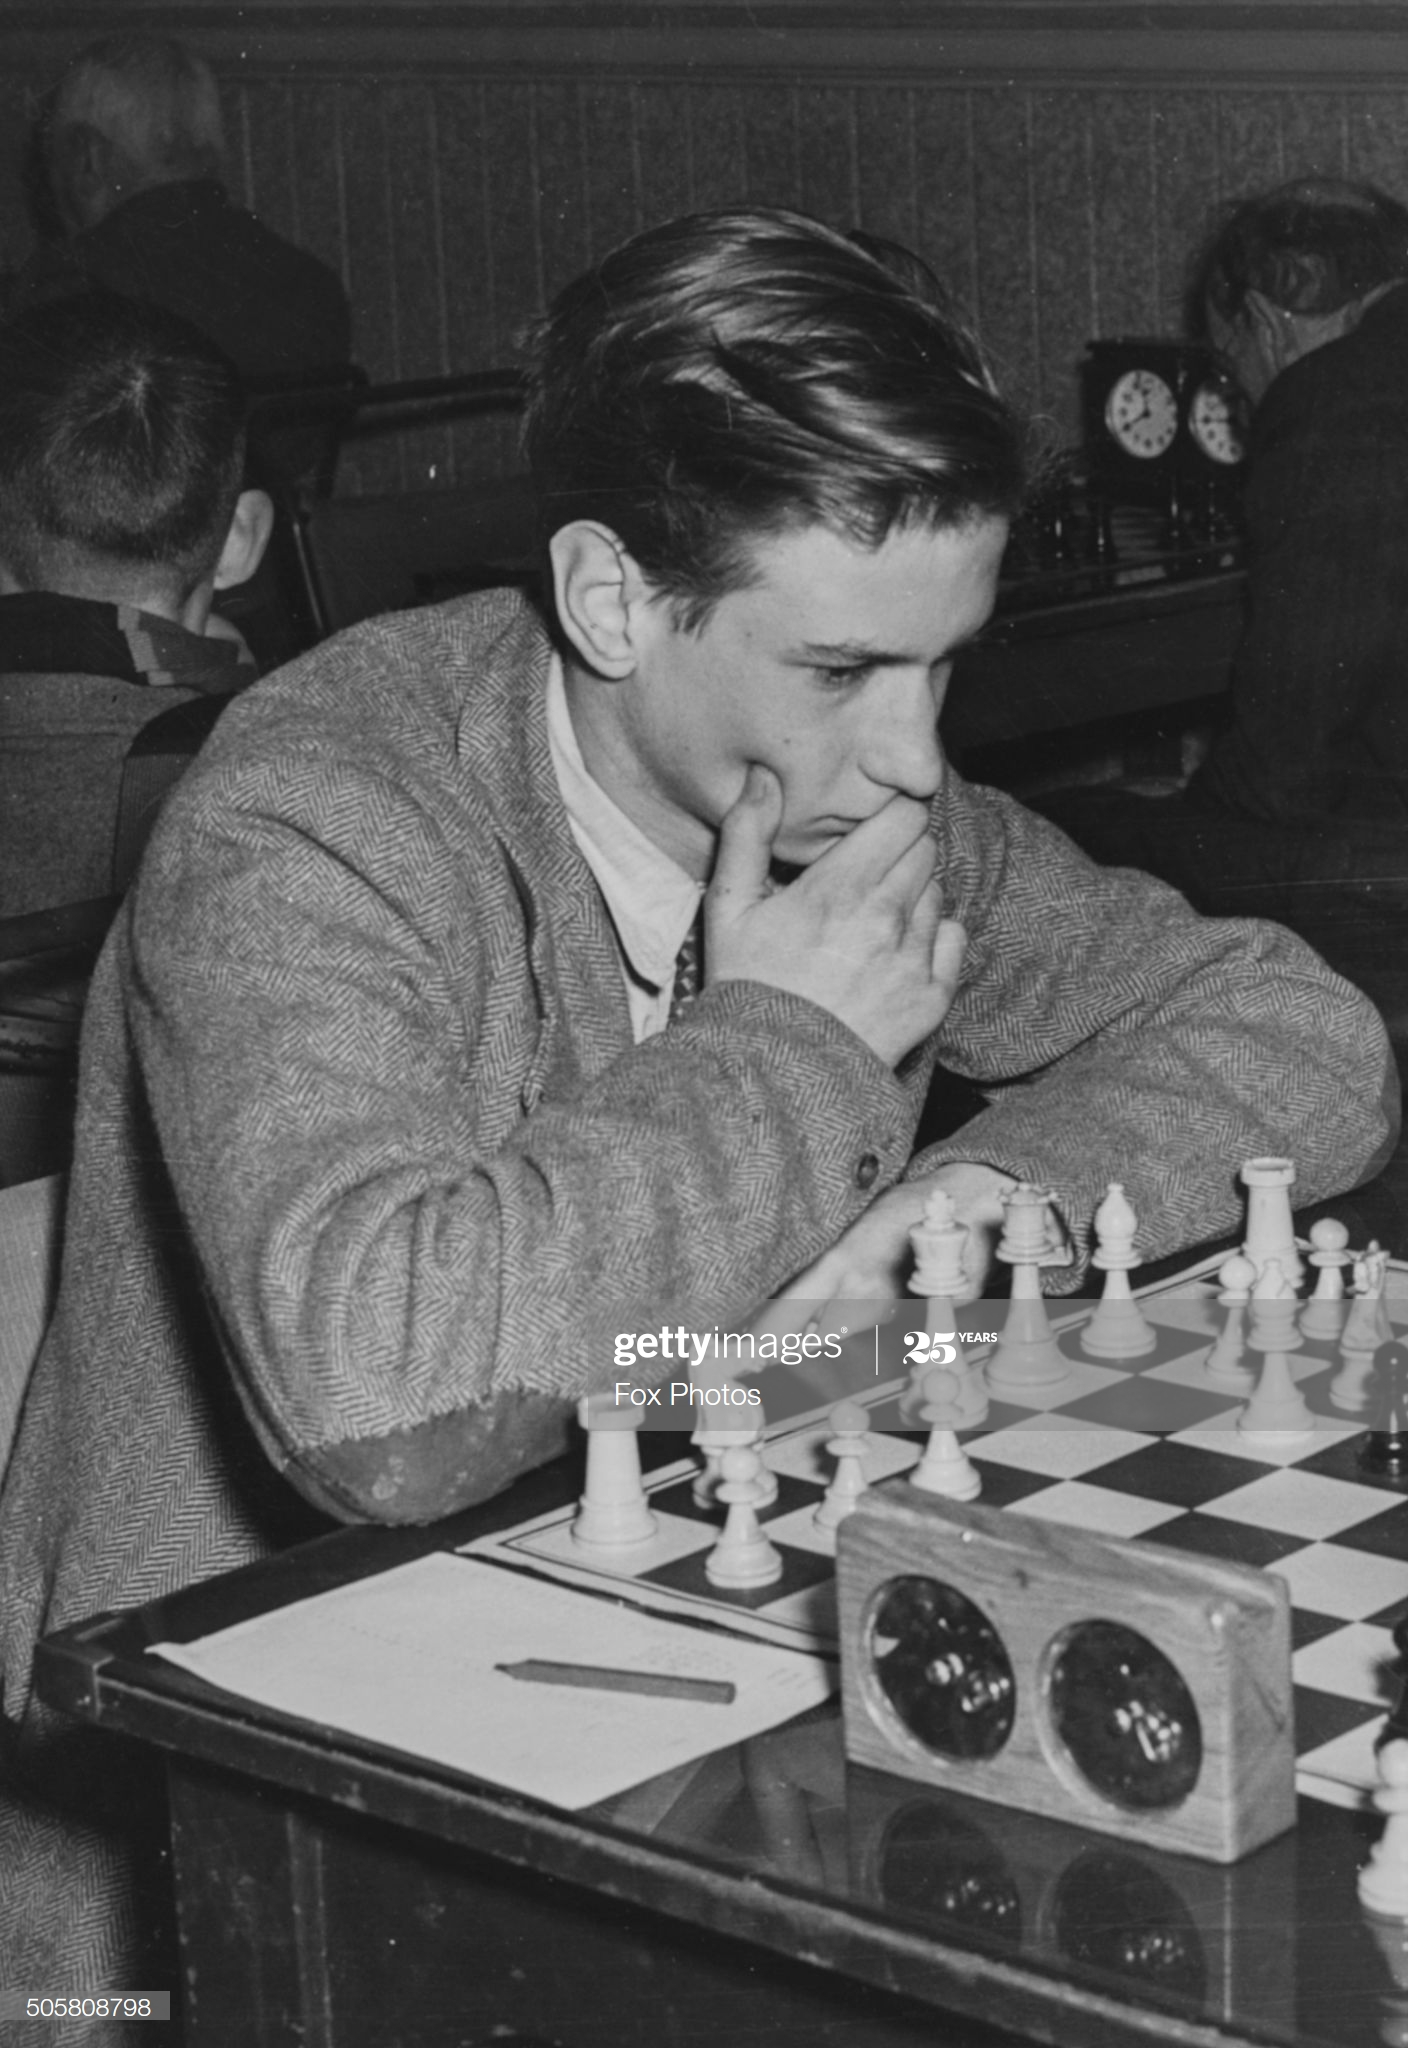 Jonathan Penrose Chess Grandmaster Jonathan Penrose pictured during a chess match, circa 1960. (Photo by Fox Photos/Hulton Archive/Getty Images)